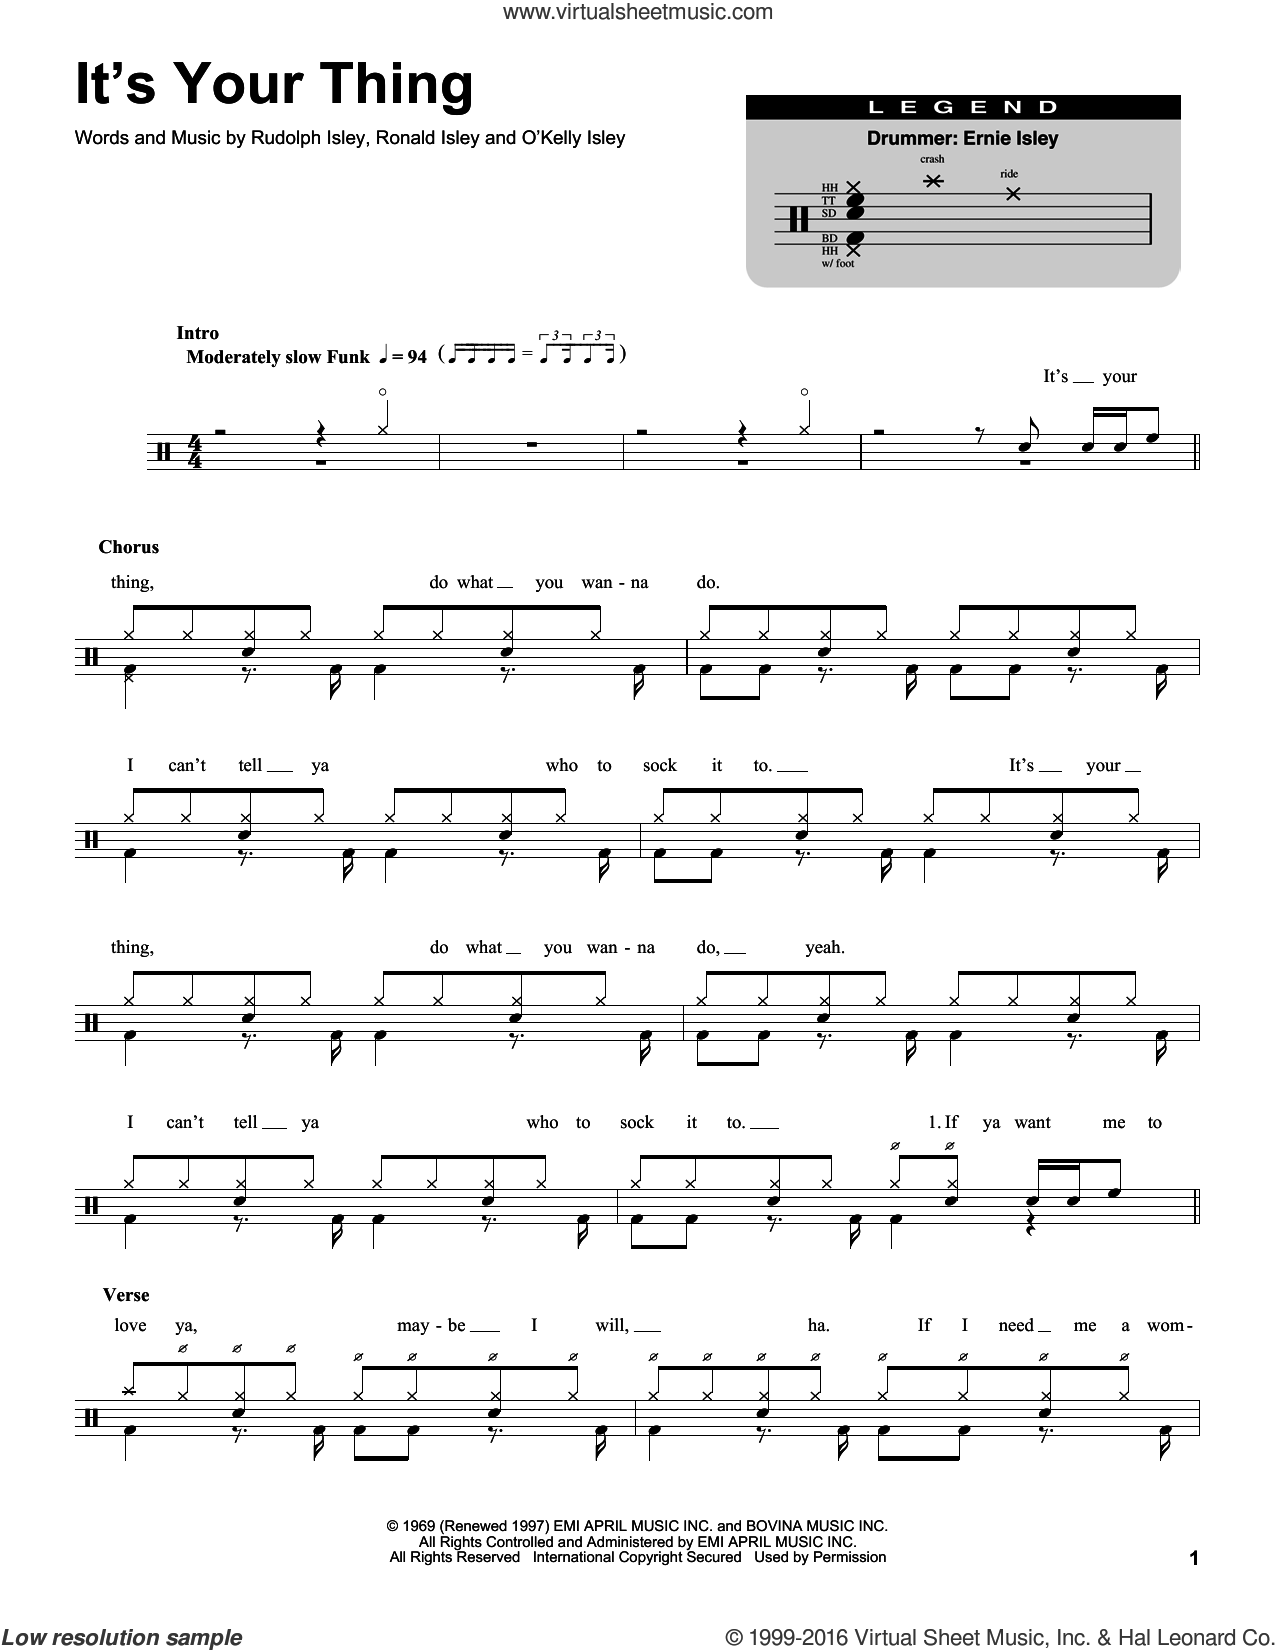 It's Your Thing sheet music for drums by Rudolph Isley